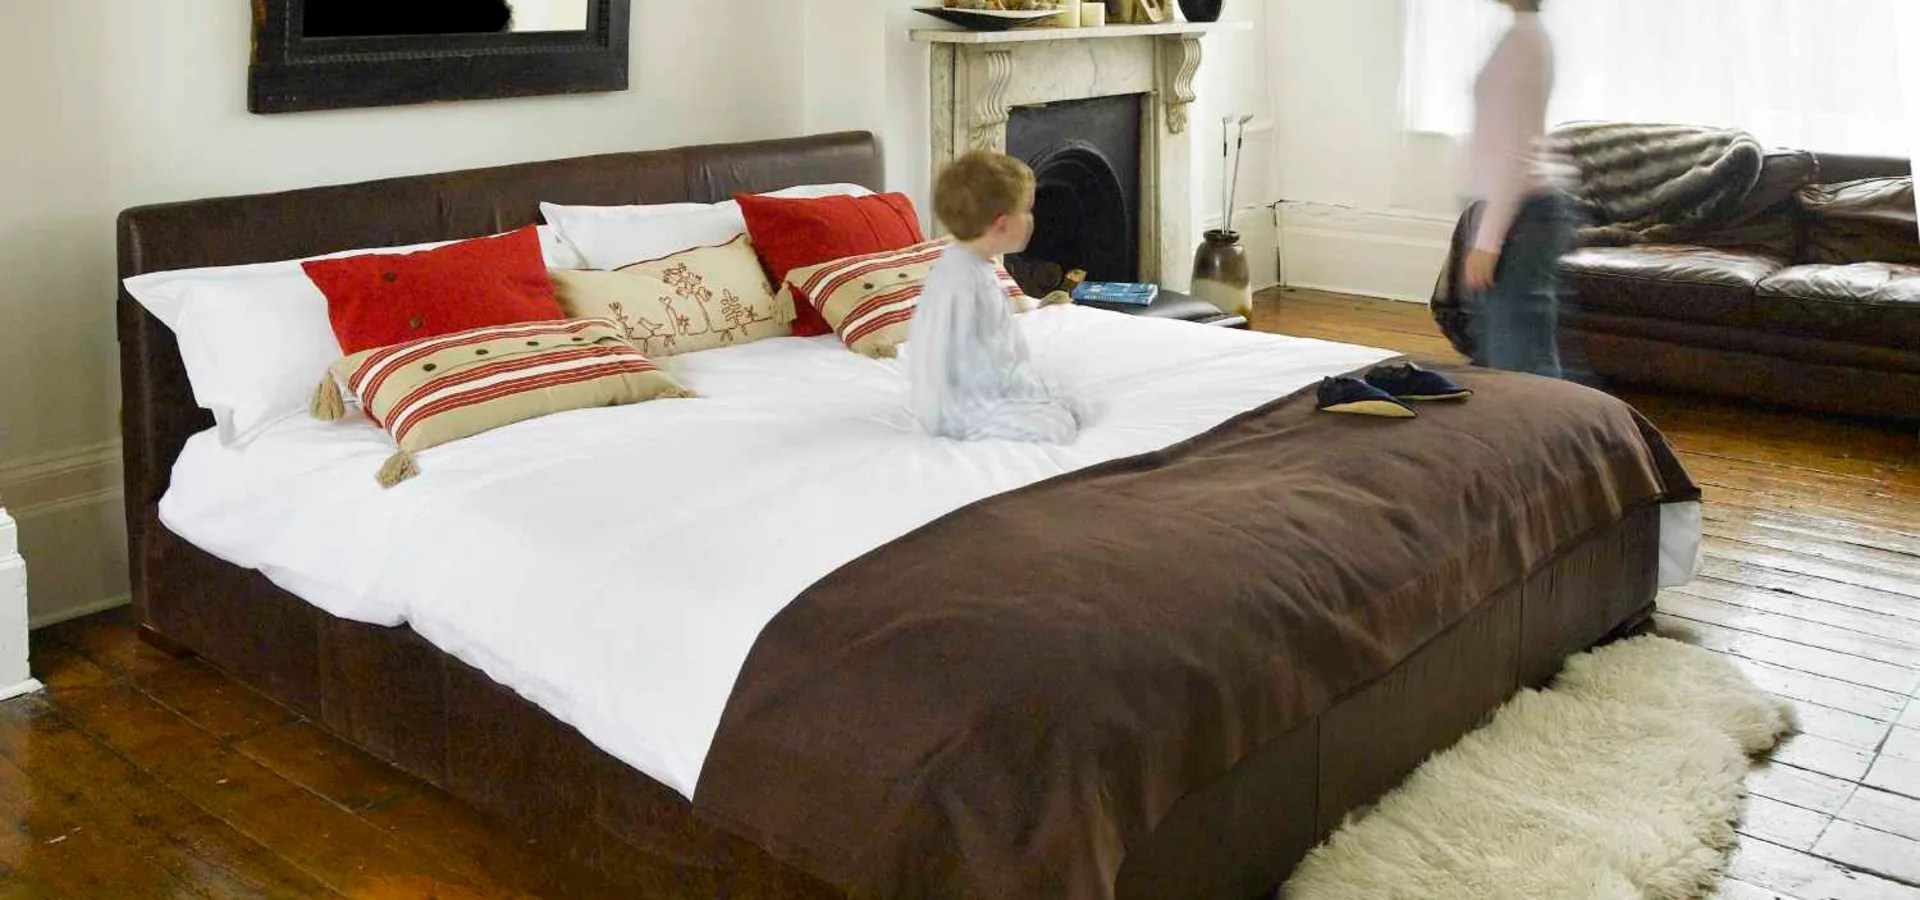 Emperor Bed Larger Beds Including Emperor Size By The Big Bed Company Homify